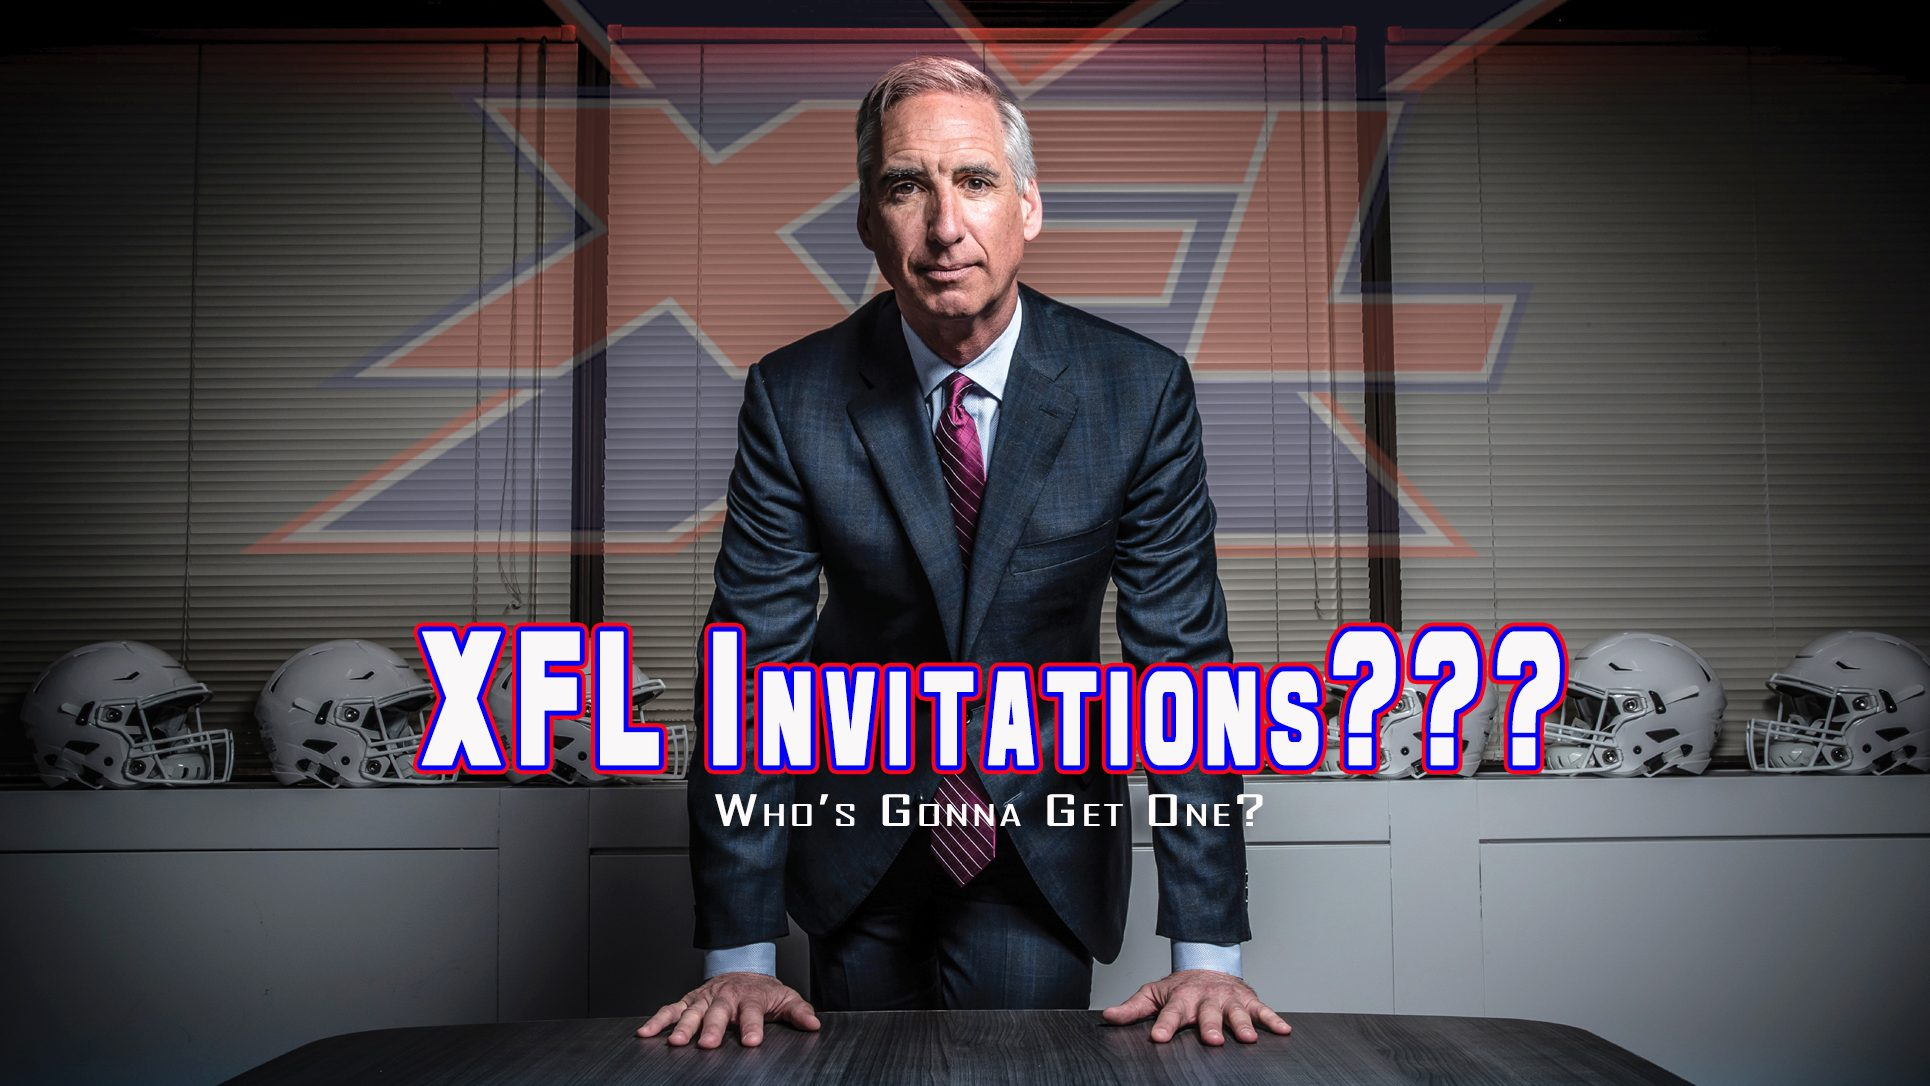 cropped-XFL-Invitations-Predictions.jpg